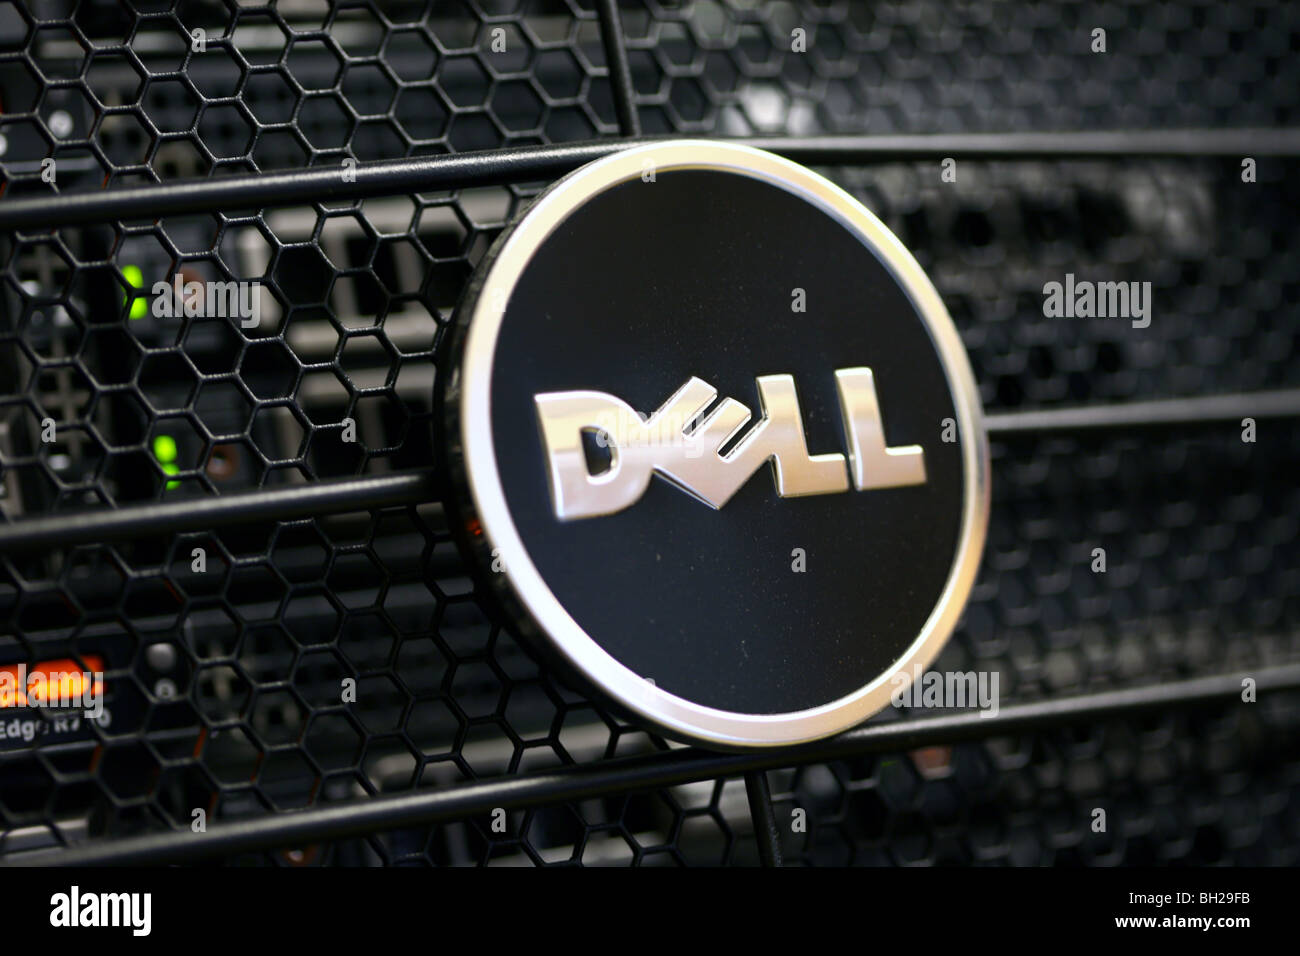 Dell Computer Logo Dell Computer Stock Photos Dell Computer Logo